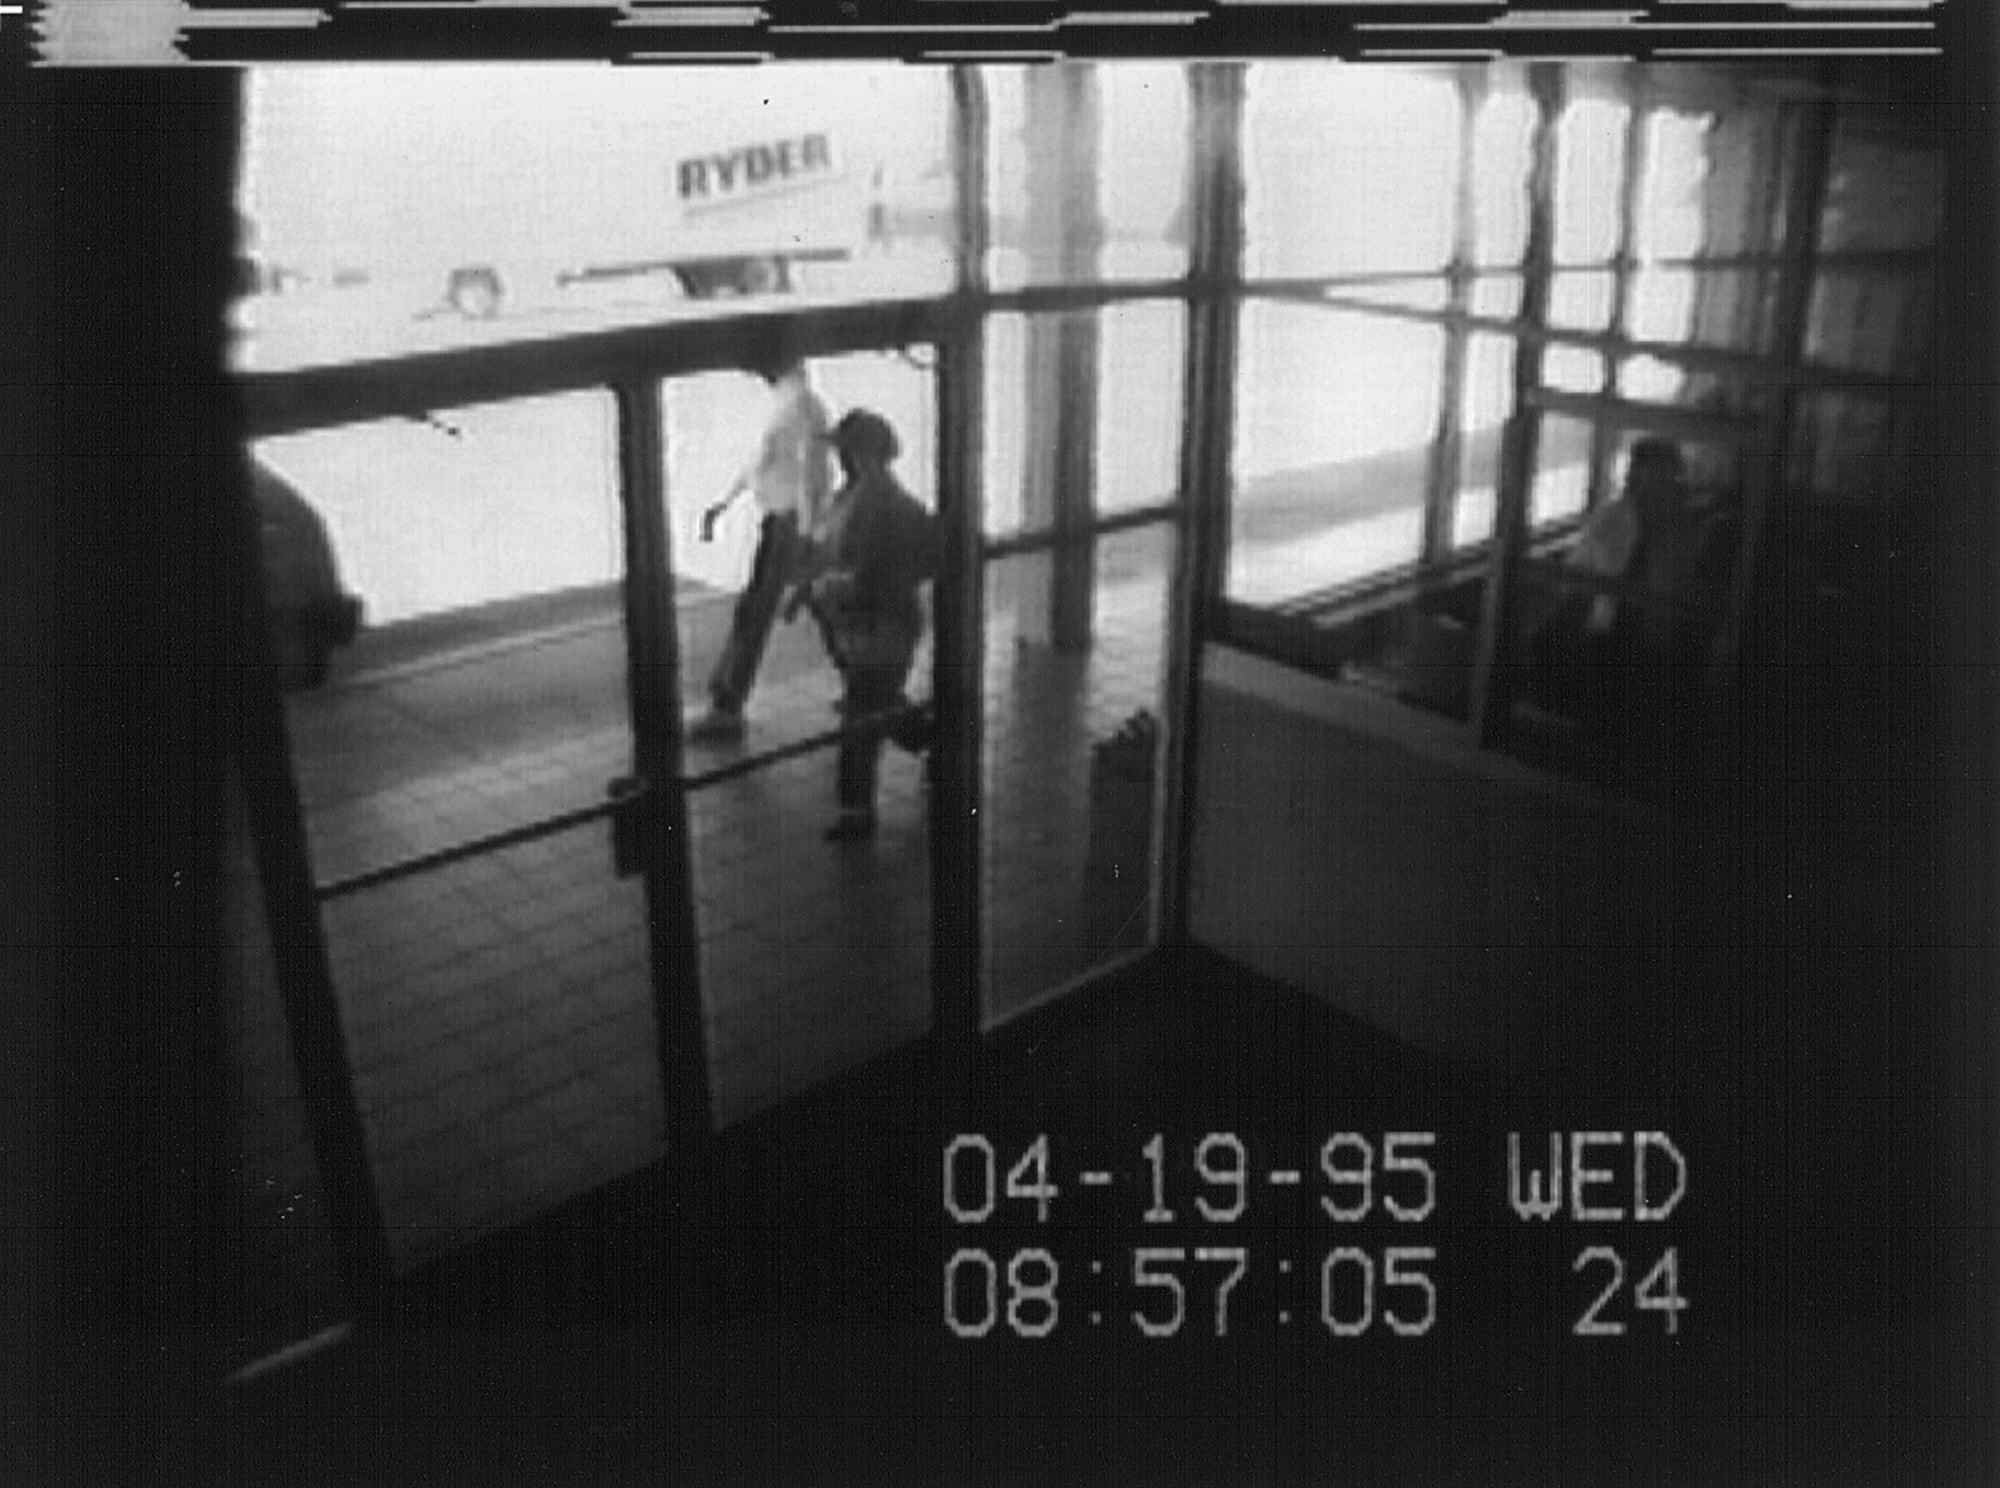 15. Surveillance footage of American terrorist Timothy McVeigh stopping in his rental truck to light the fuse. The attack killed 168 people.